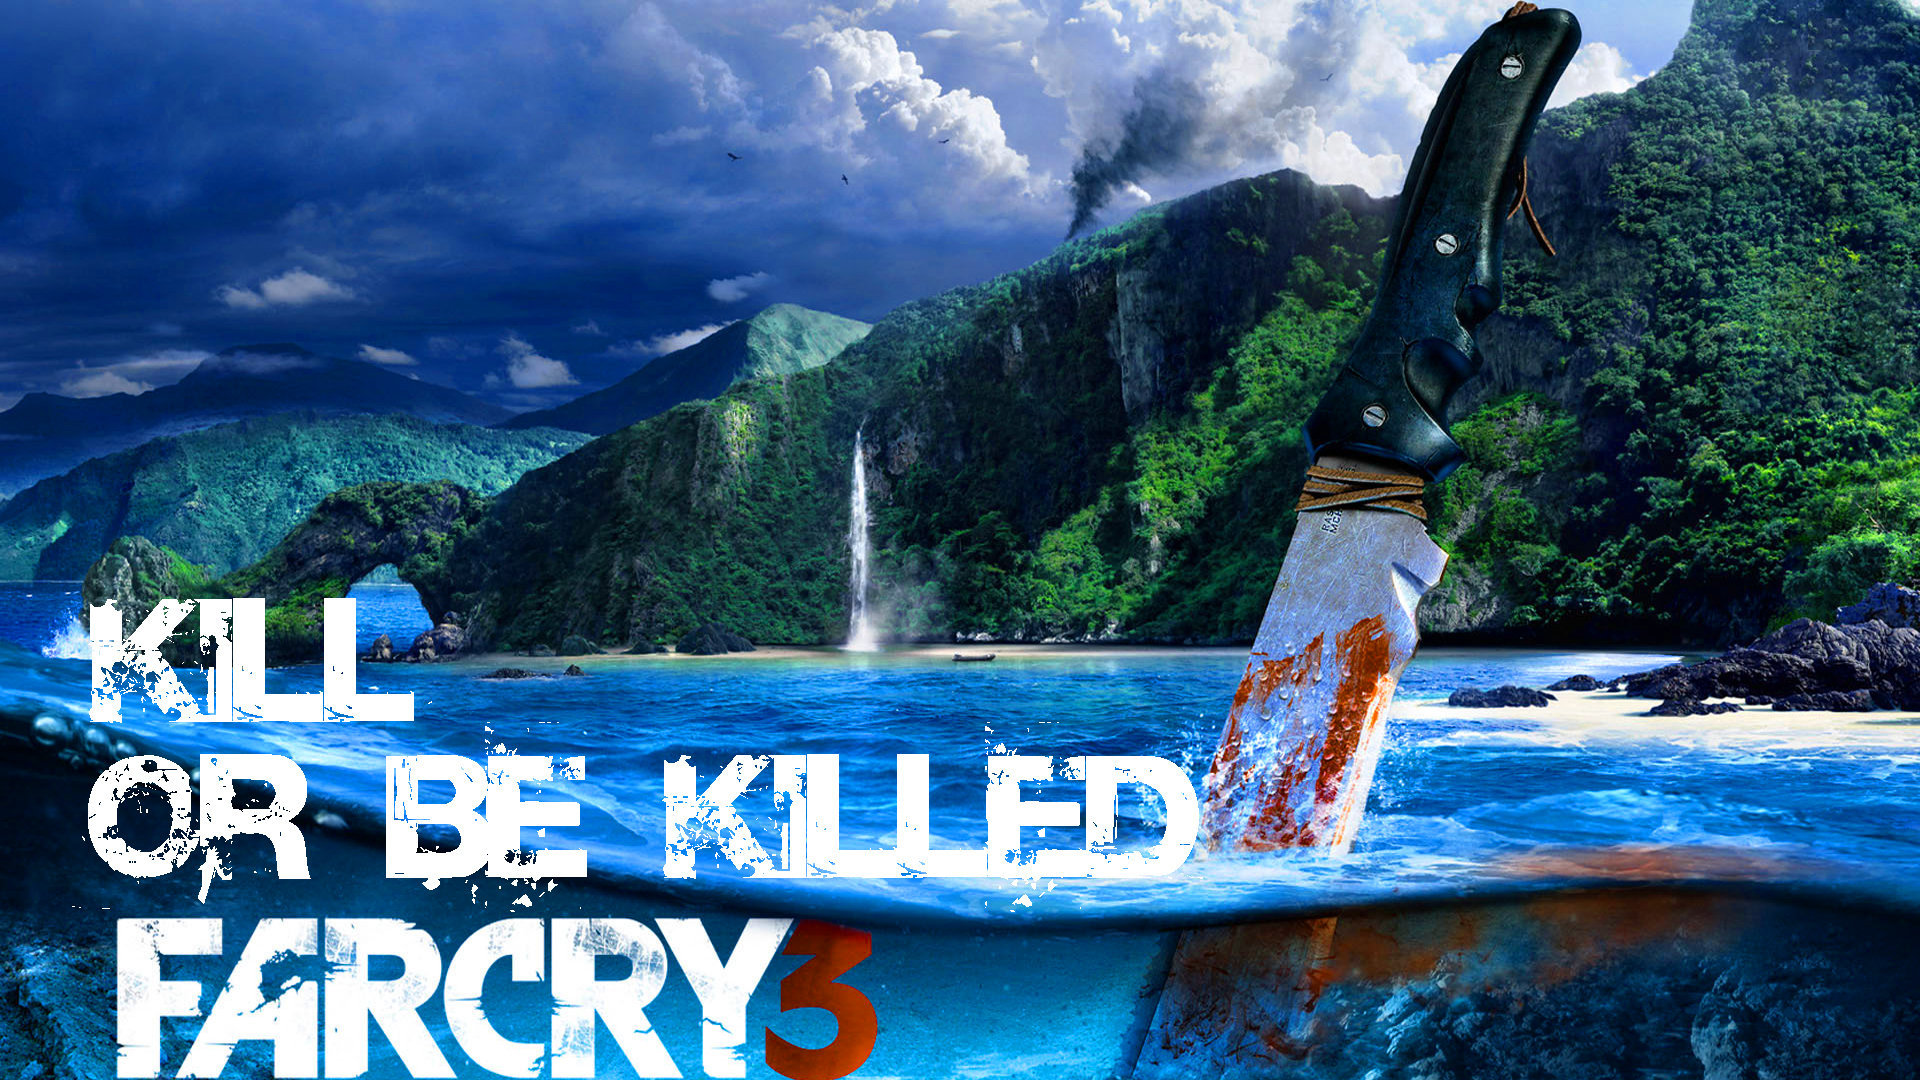 far cry 3 wallpaper hdjpg 1920x1080